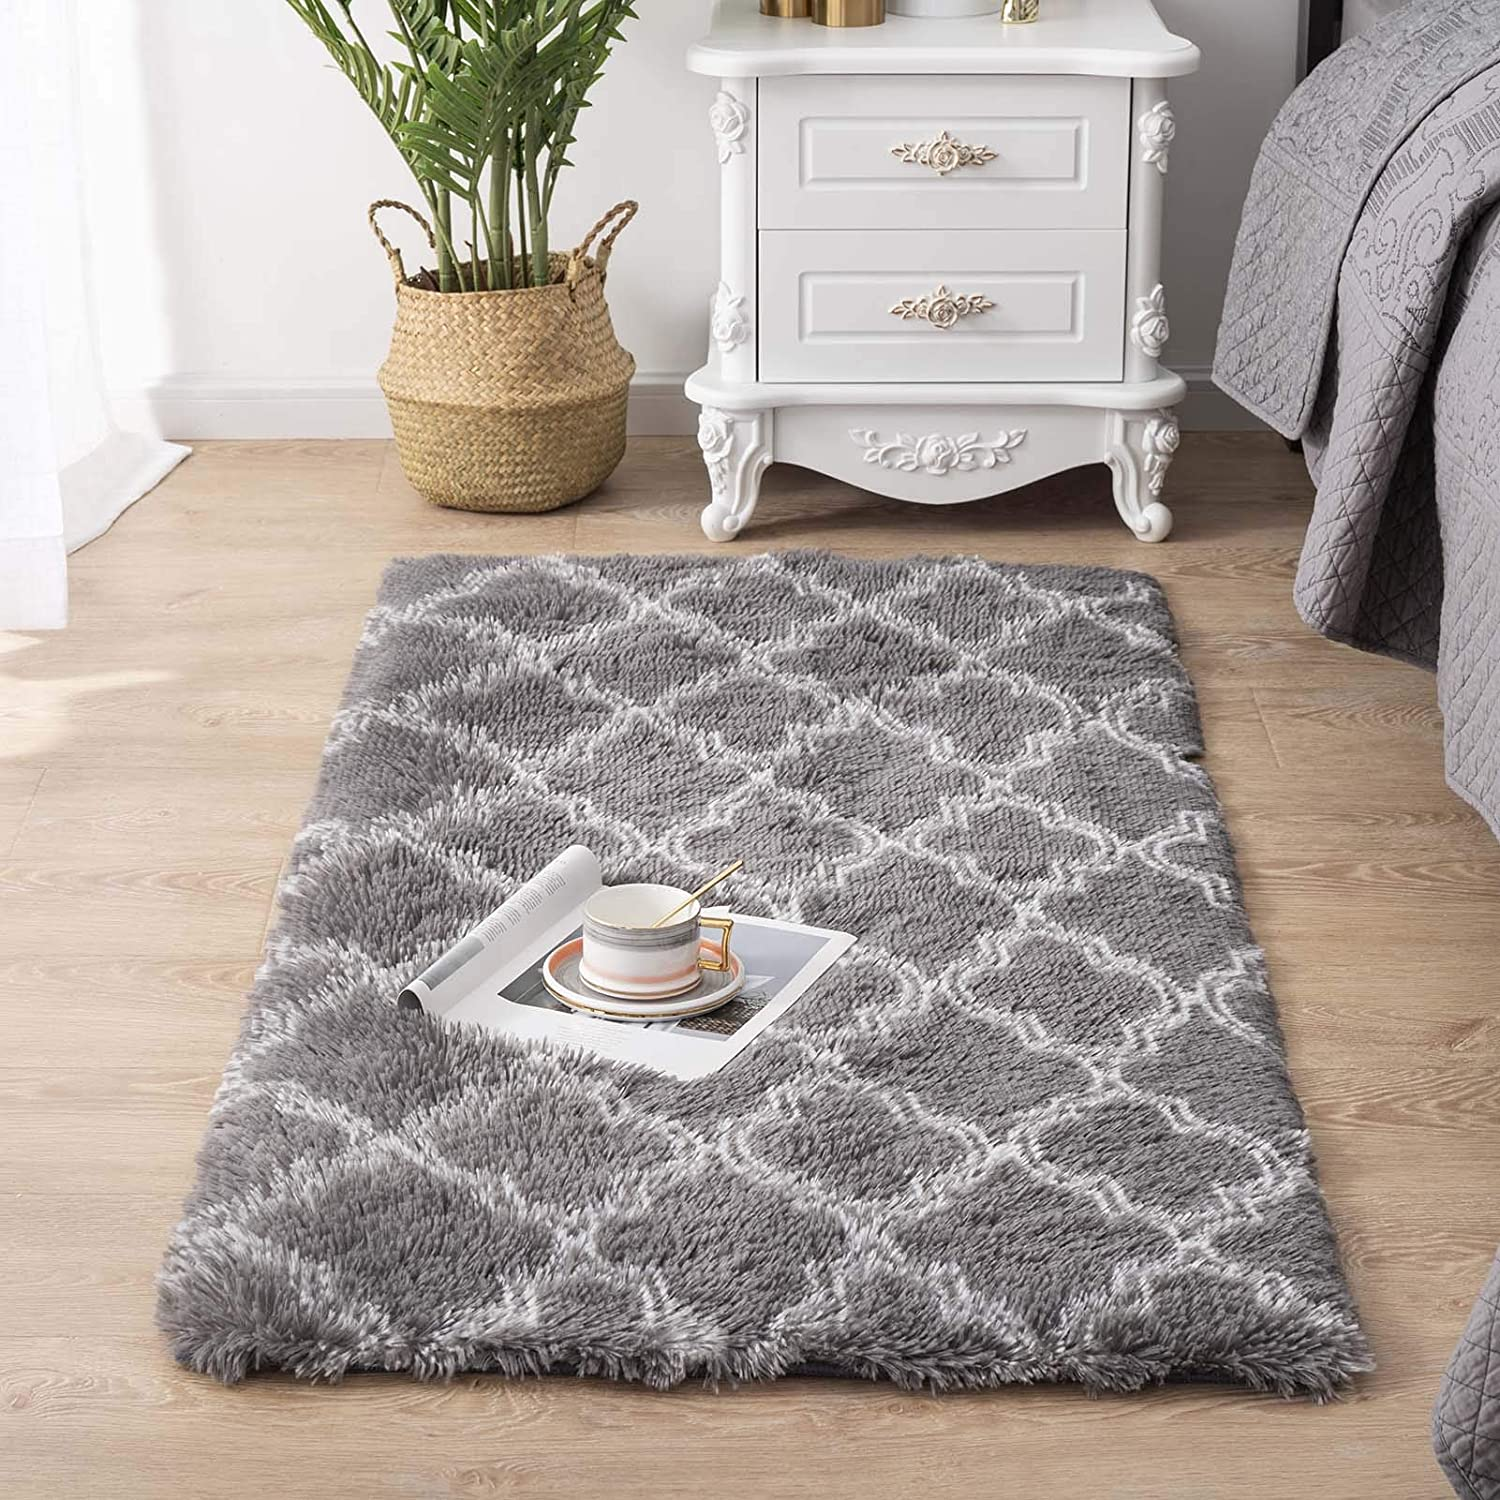 Carvapet Super Soft Moroccan Area Rugs for Bedroom Living Room Shaggy Modern Fluffy Carpet for Nursery Baby Rooms Kids Rooms Pattern Silky Smooth Mat 2.3' x 5', Grey and White